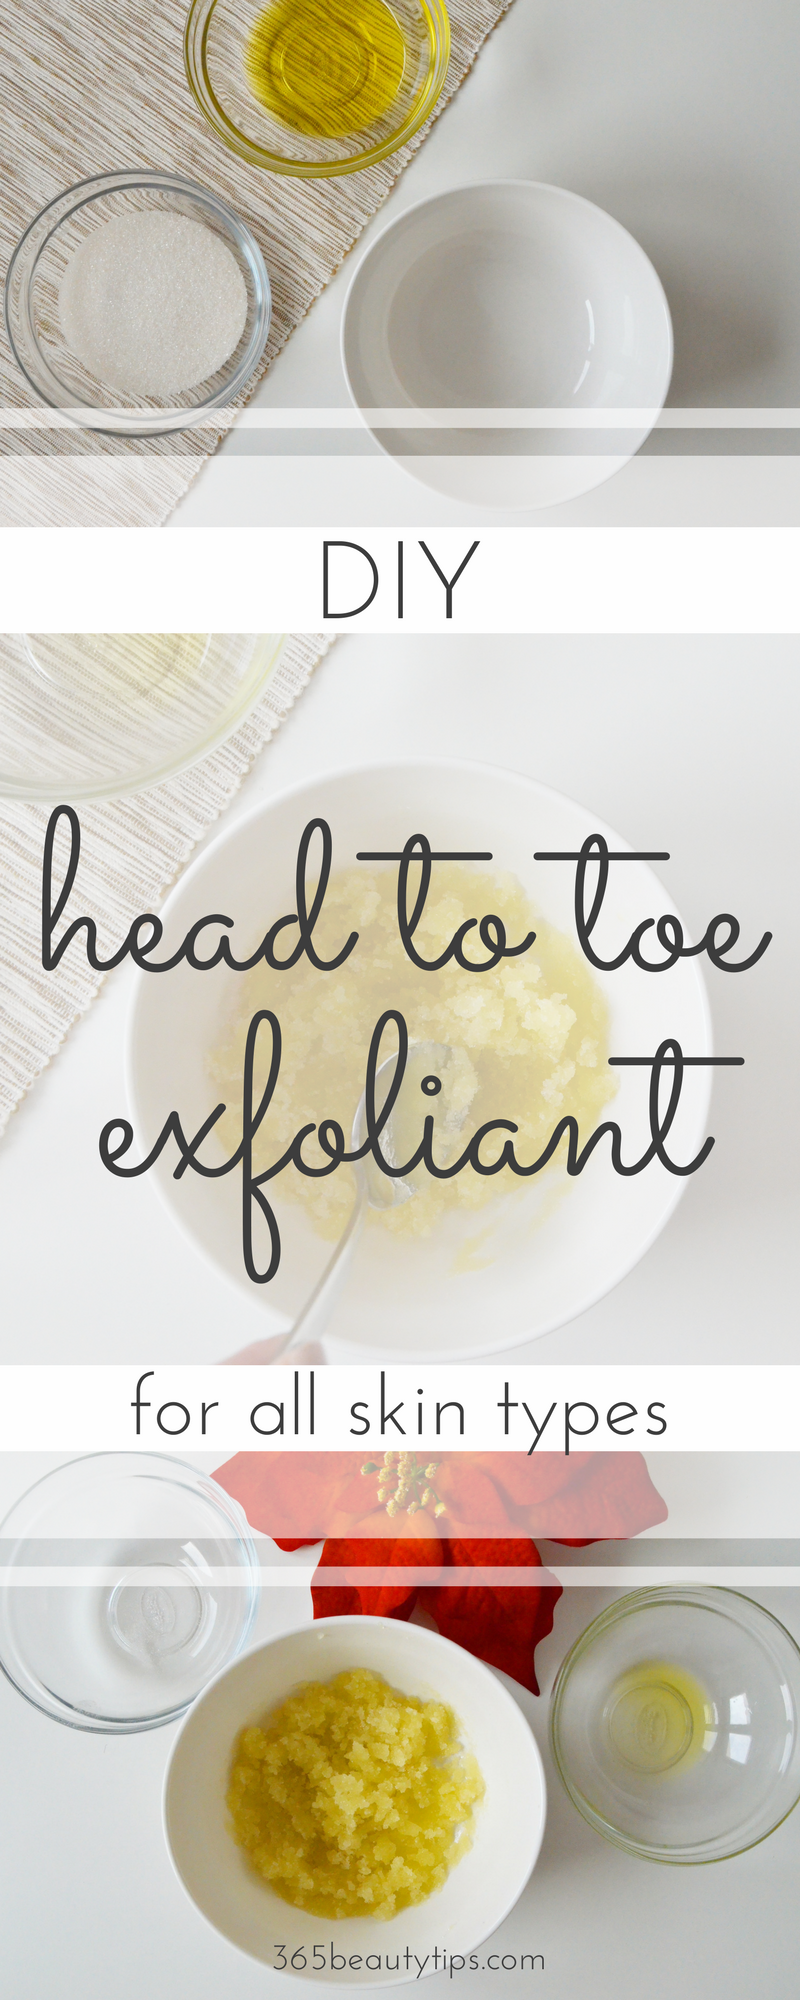 DIY-head-to-toe-exfoliant-365-beauty-tips